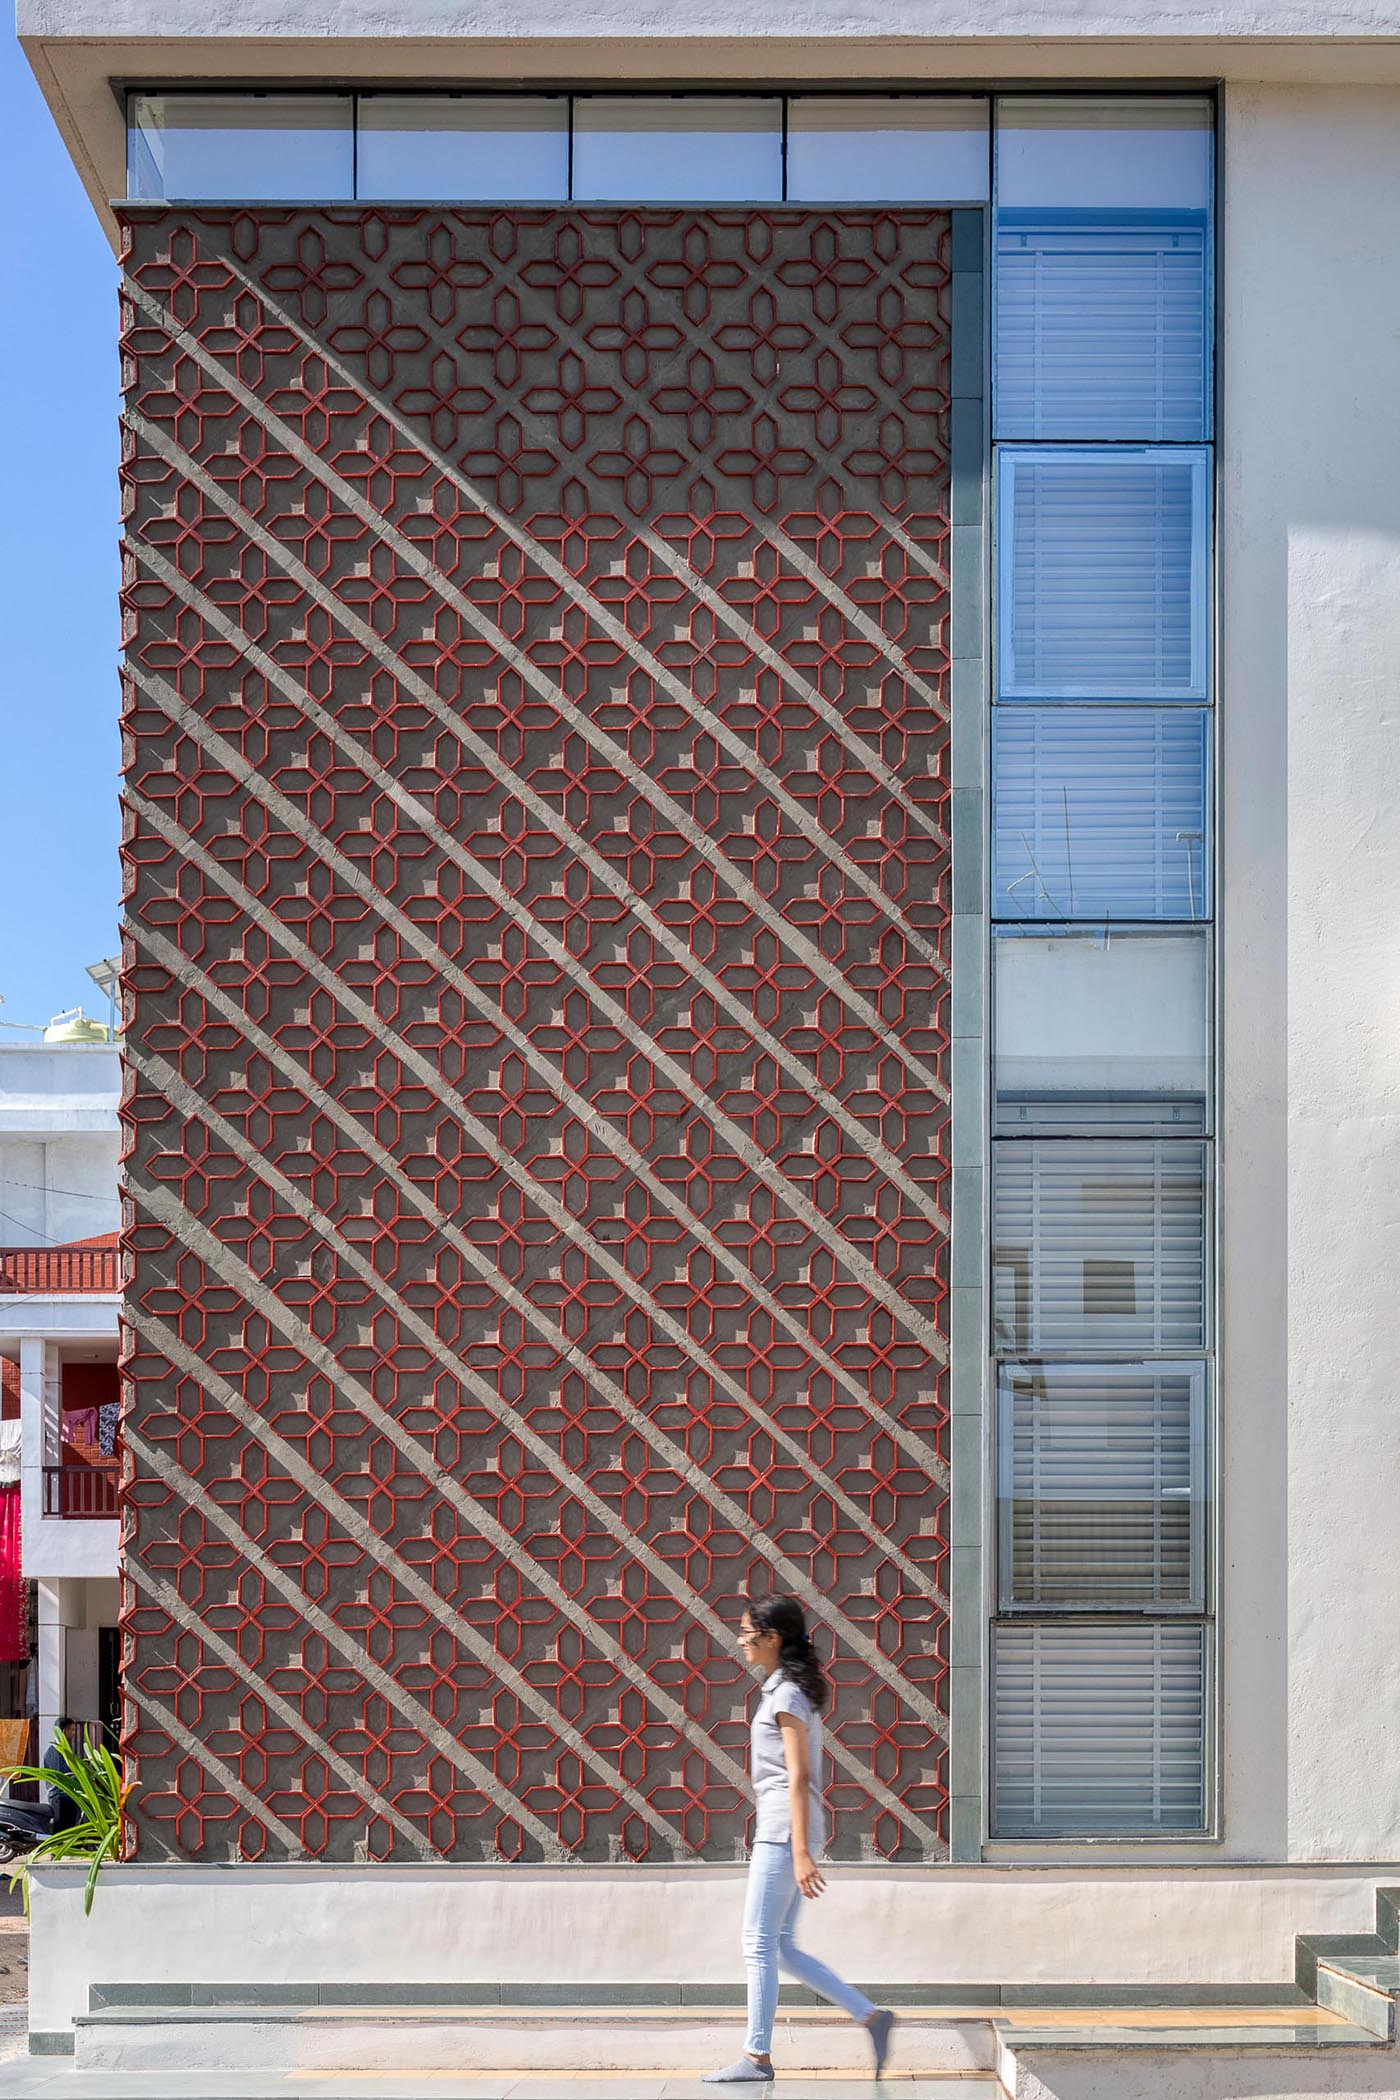 A unique patterned accent wall on a modern house facade.